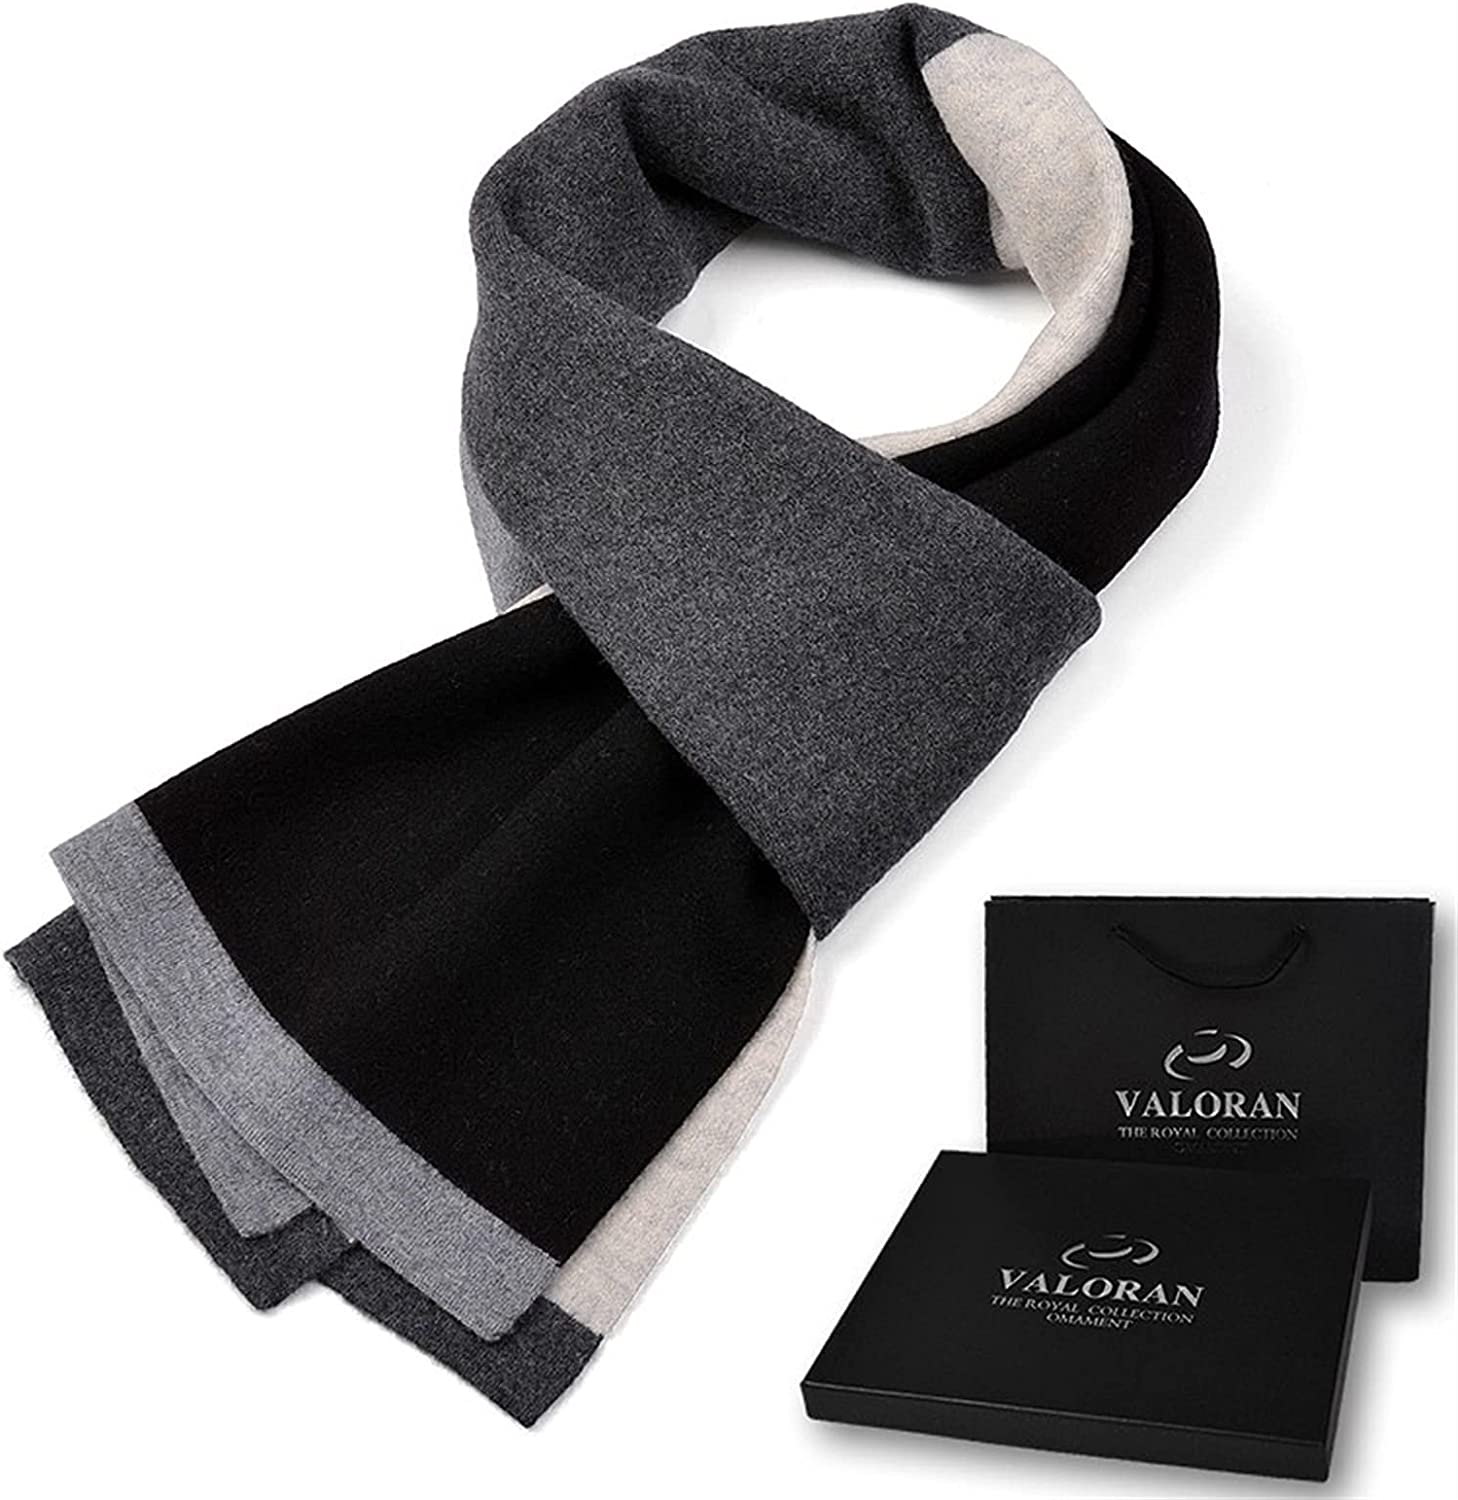 Long Black Trend Scarf British Classic Couple Models Joker Simple Ladies Collar High-end Business Male Winter Plaid Wool 100% Versatile Birthday Gift Thick Warm Matching Box Men Women Scarves